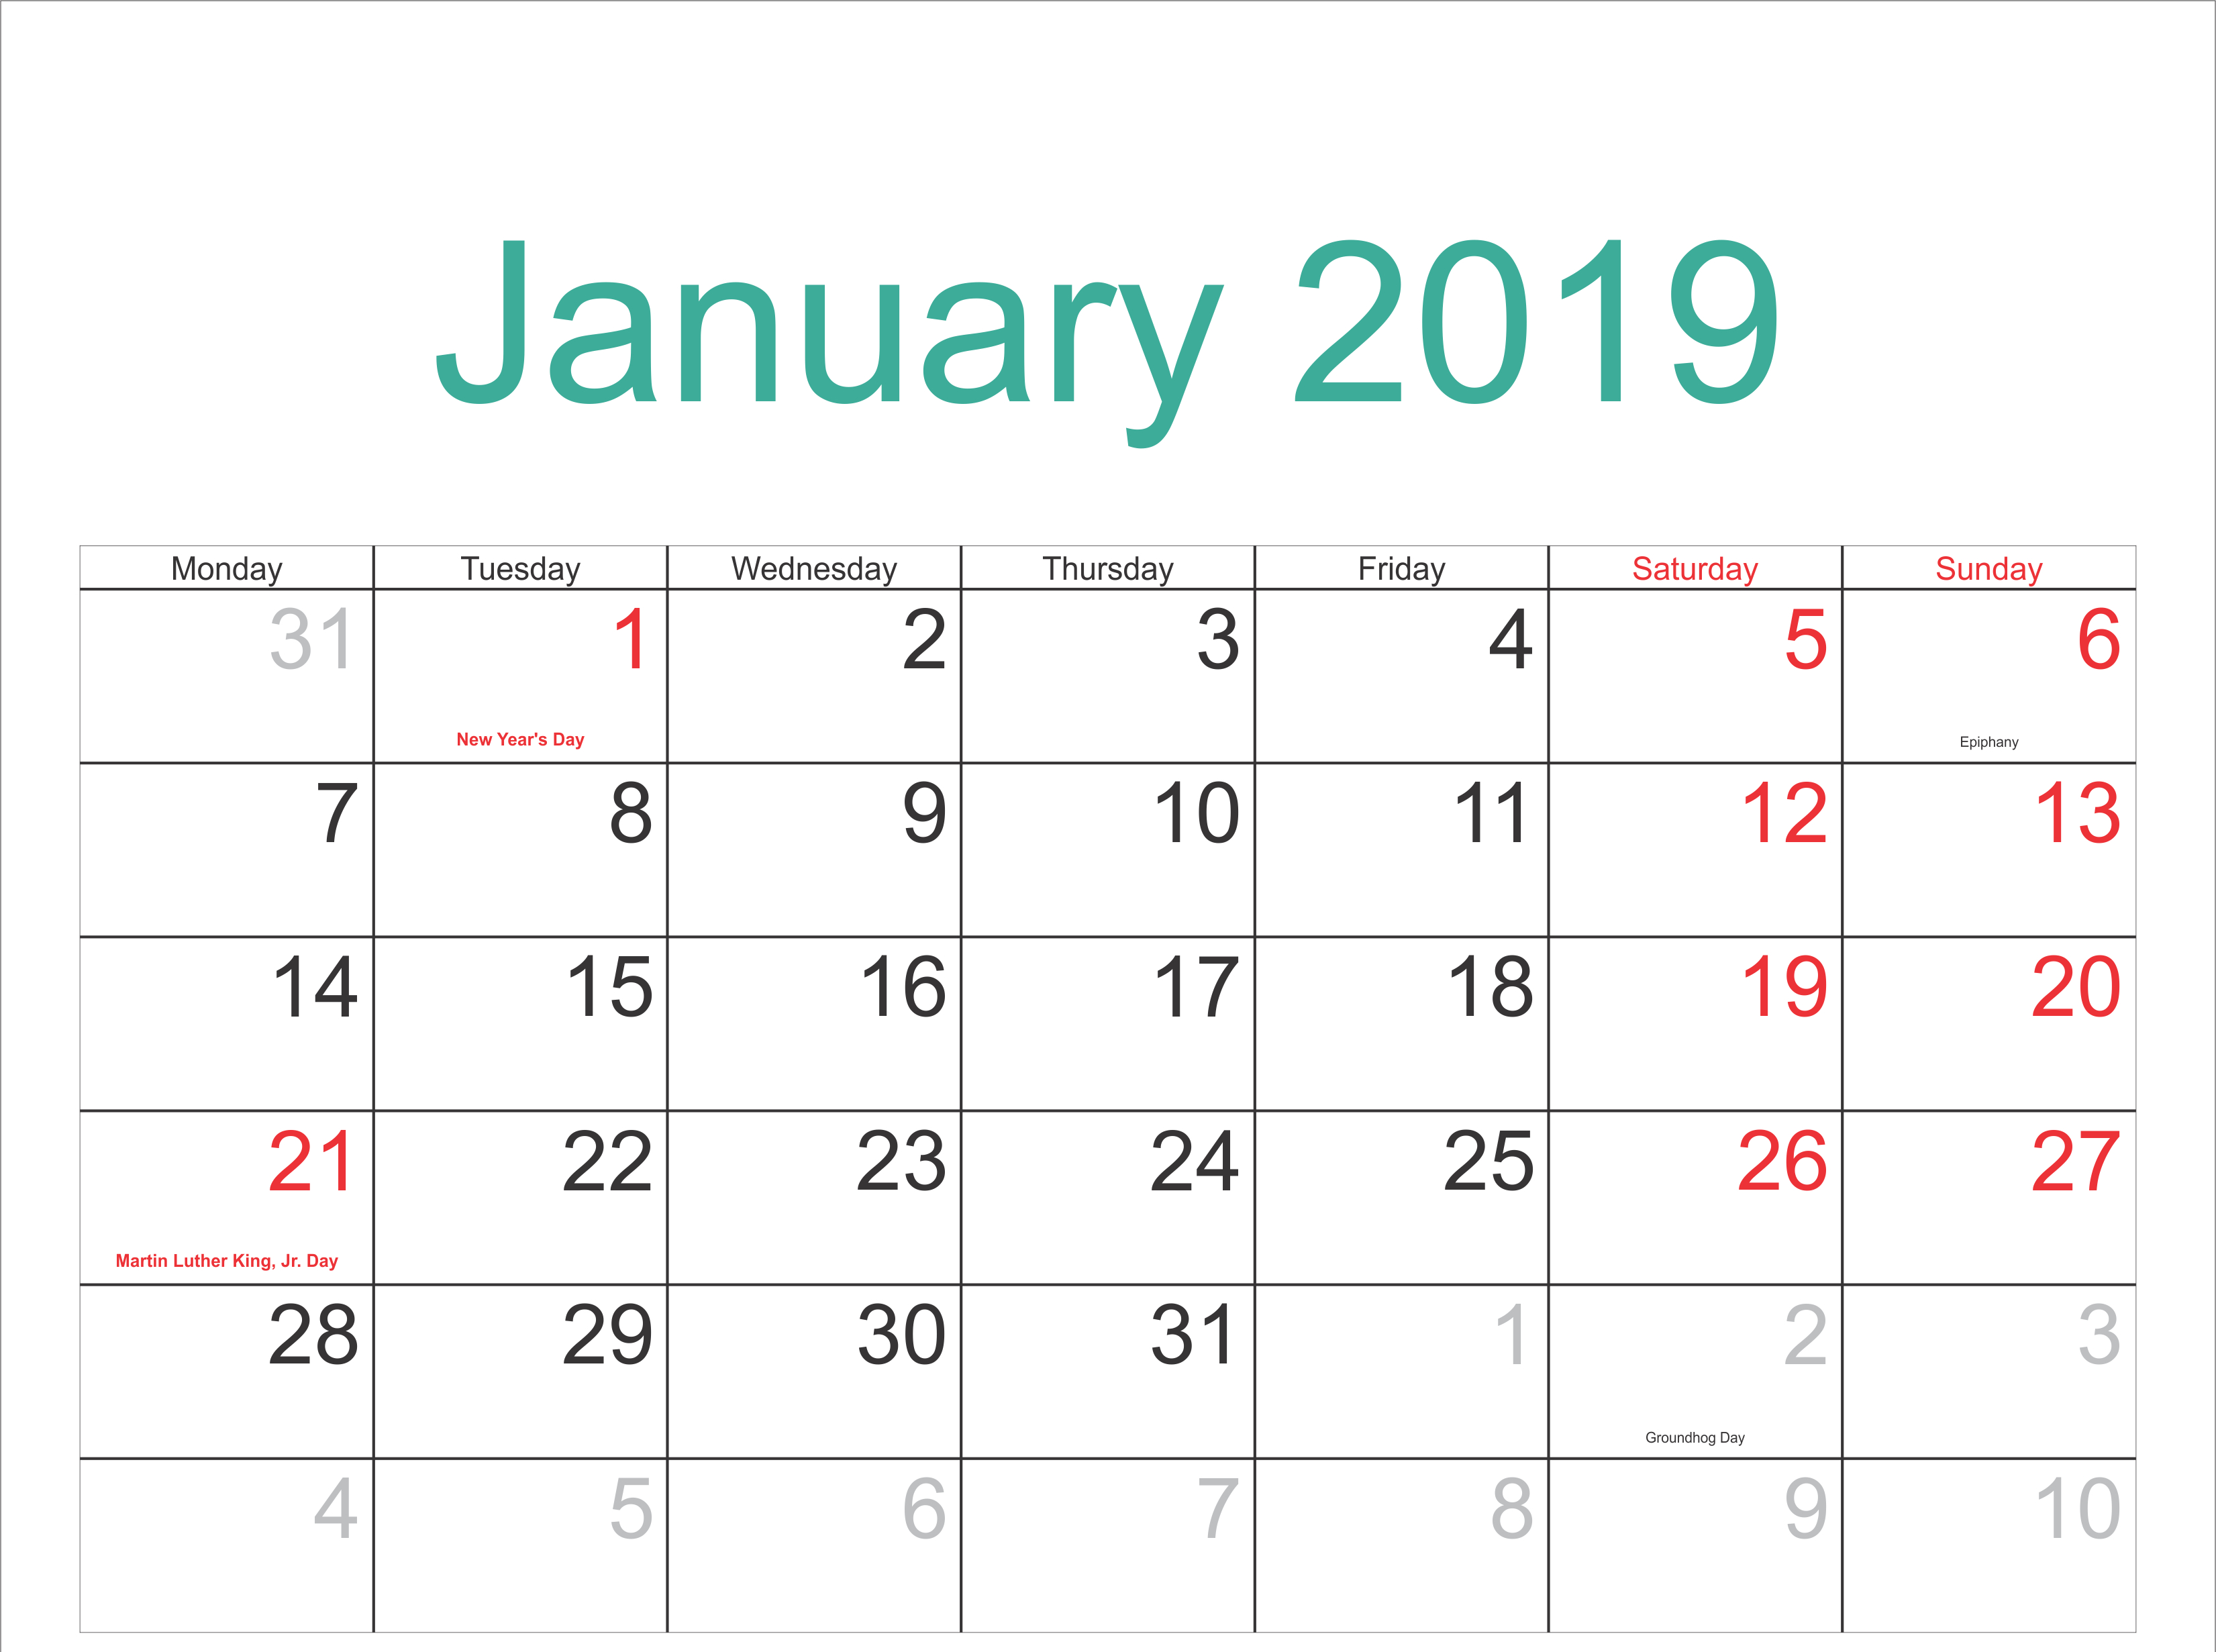 January 2019 Calendar Archives - 2019 Calendar Template Holidays 6 Nations 2019 Calendar Download